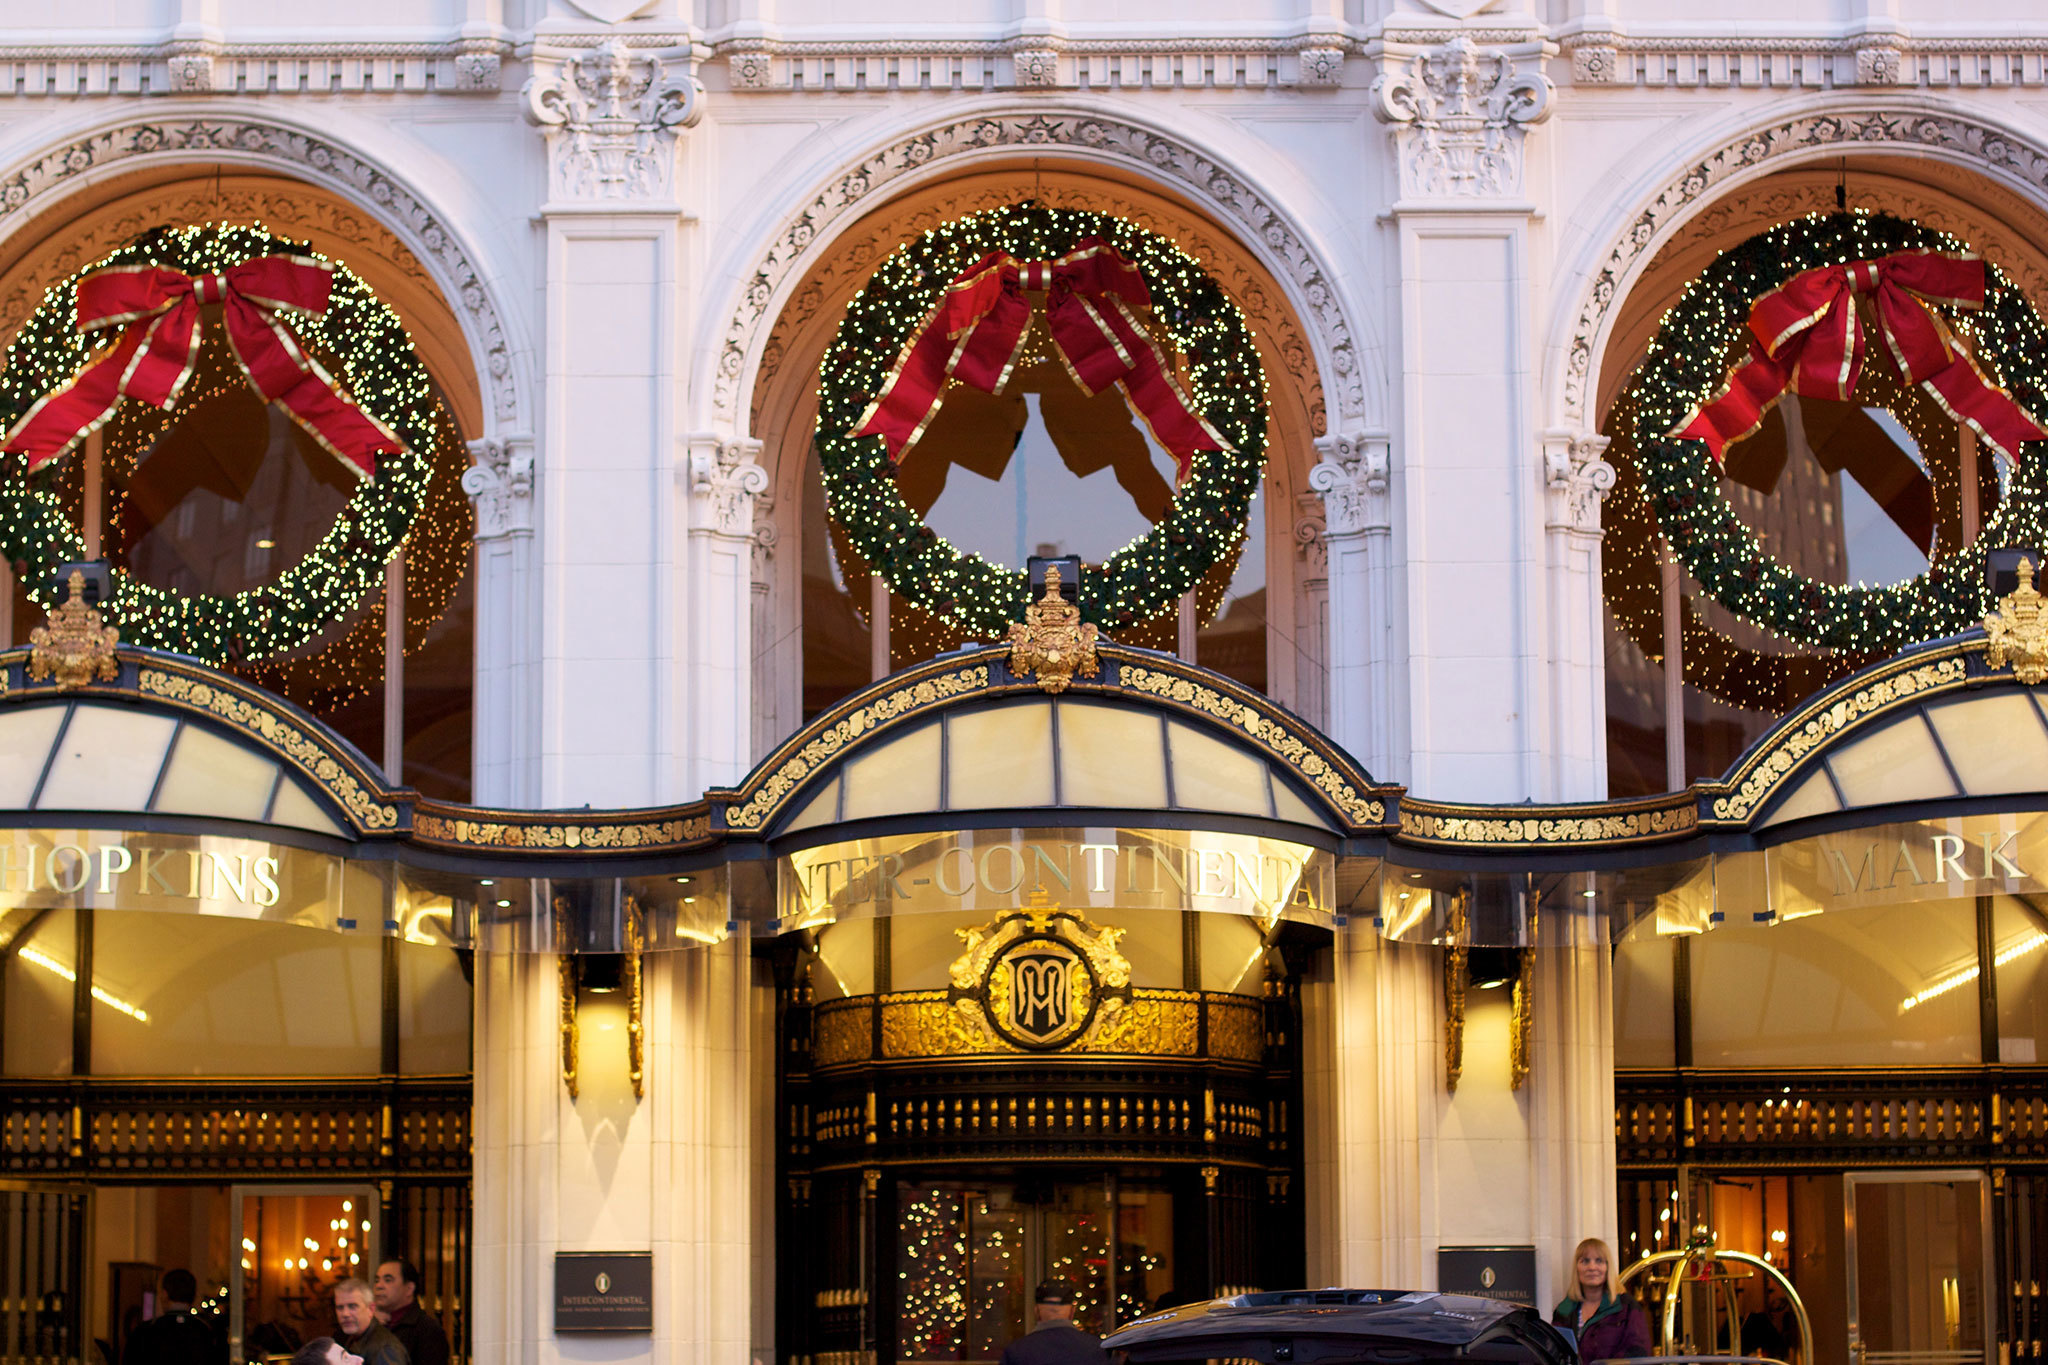 Photos of San Francisco looking gorgeous during the holidays